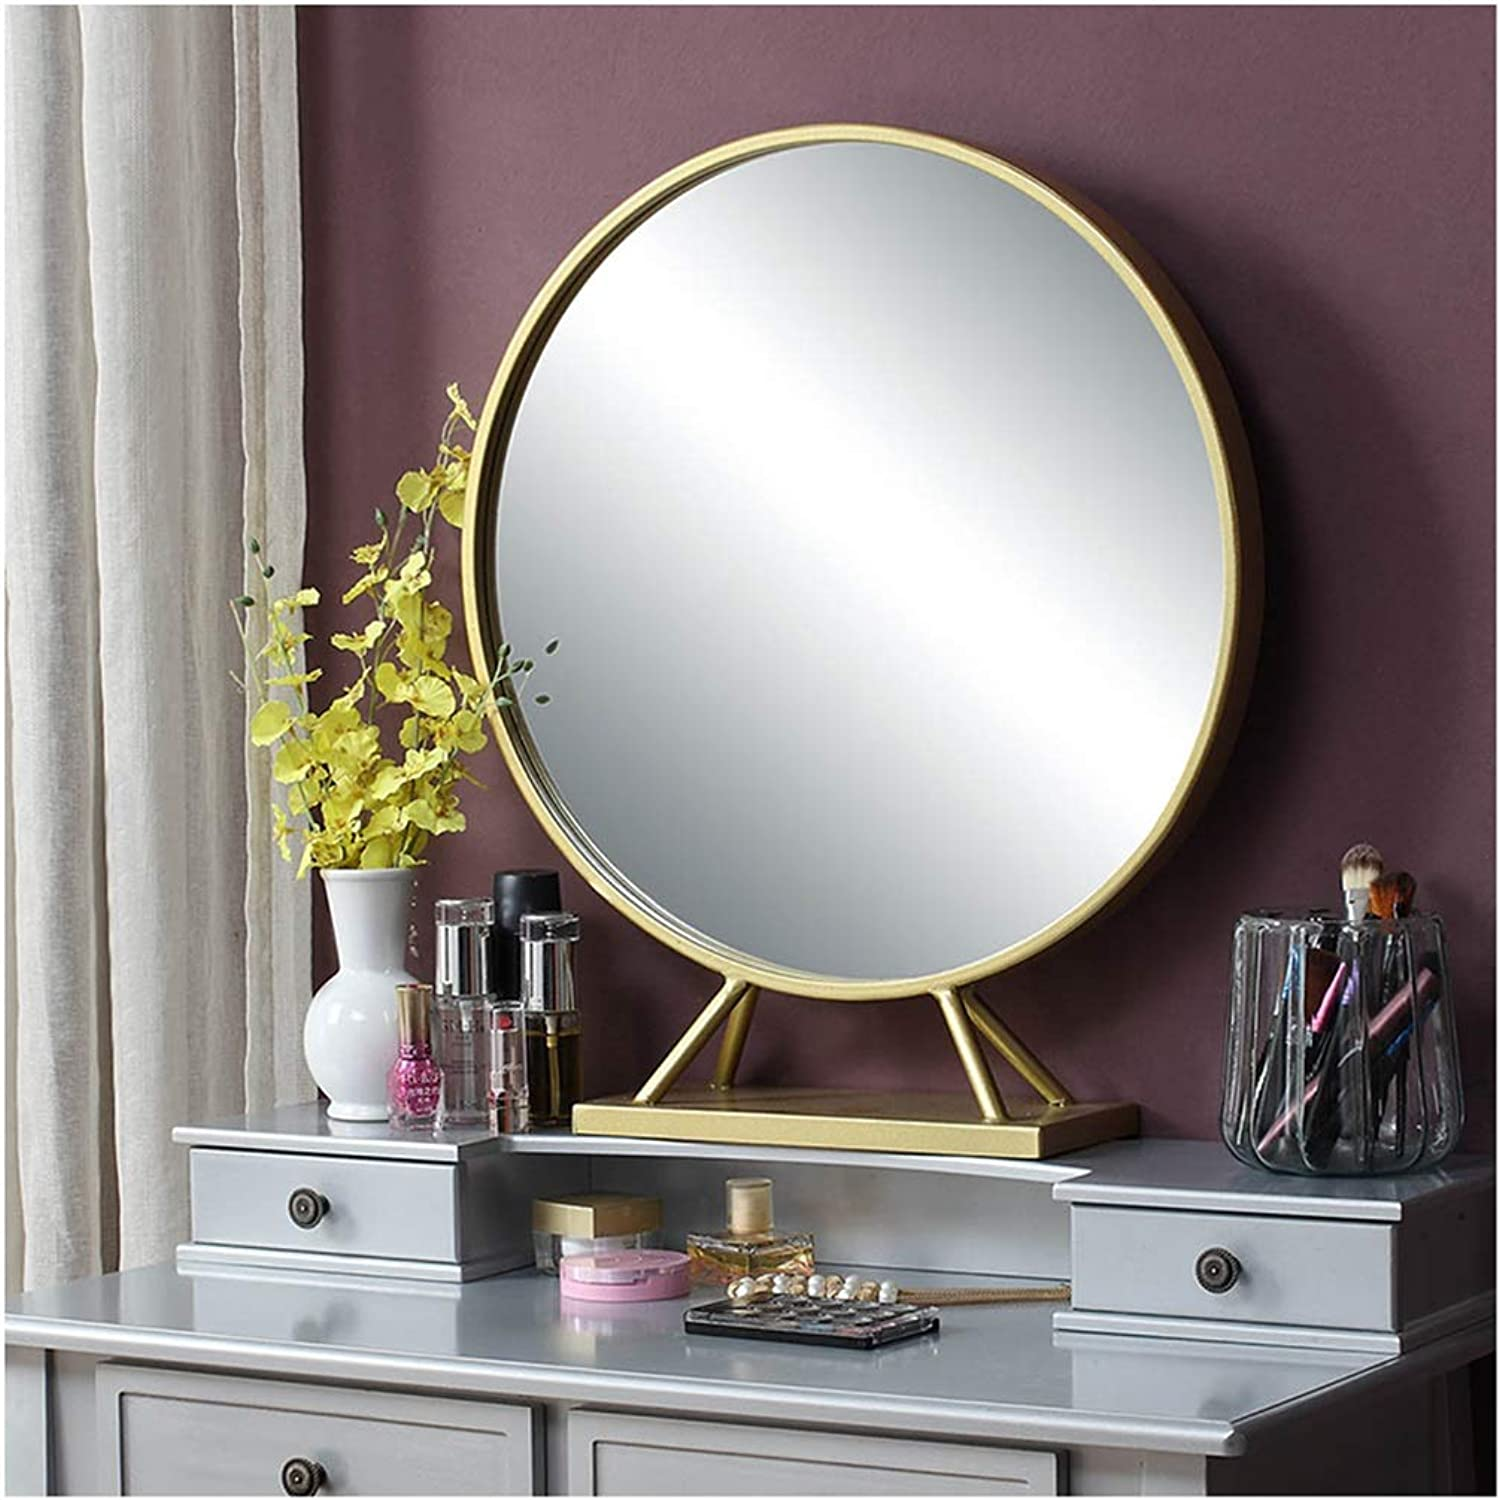 YYF Nordic Minimalist Bathroom Round Mirror Black and White Two colors with Mirror Bracket (color   gold, Size   50cm)